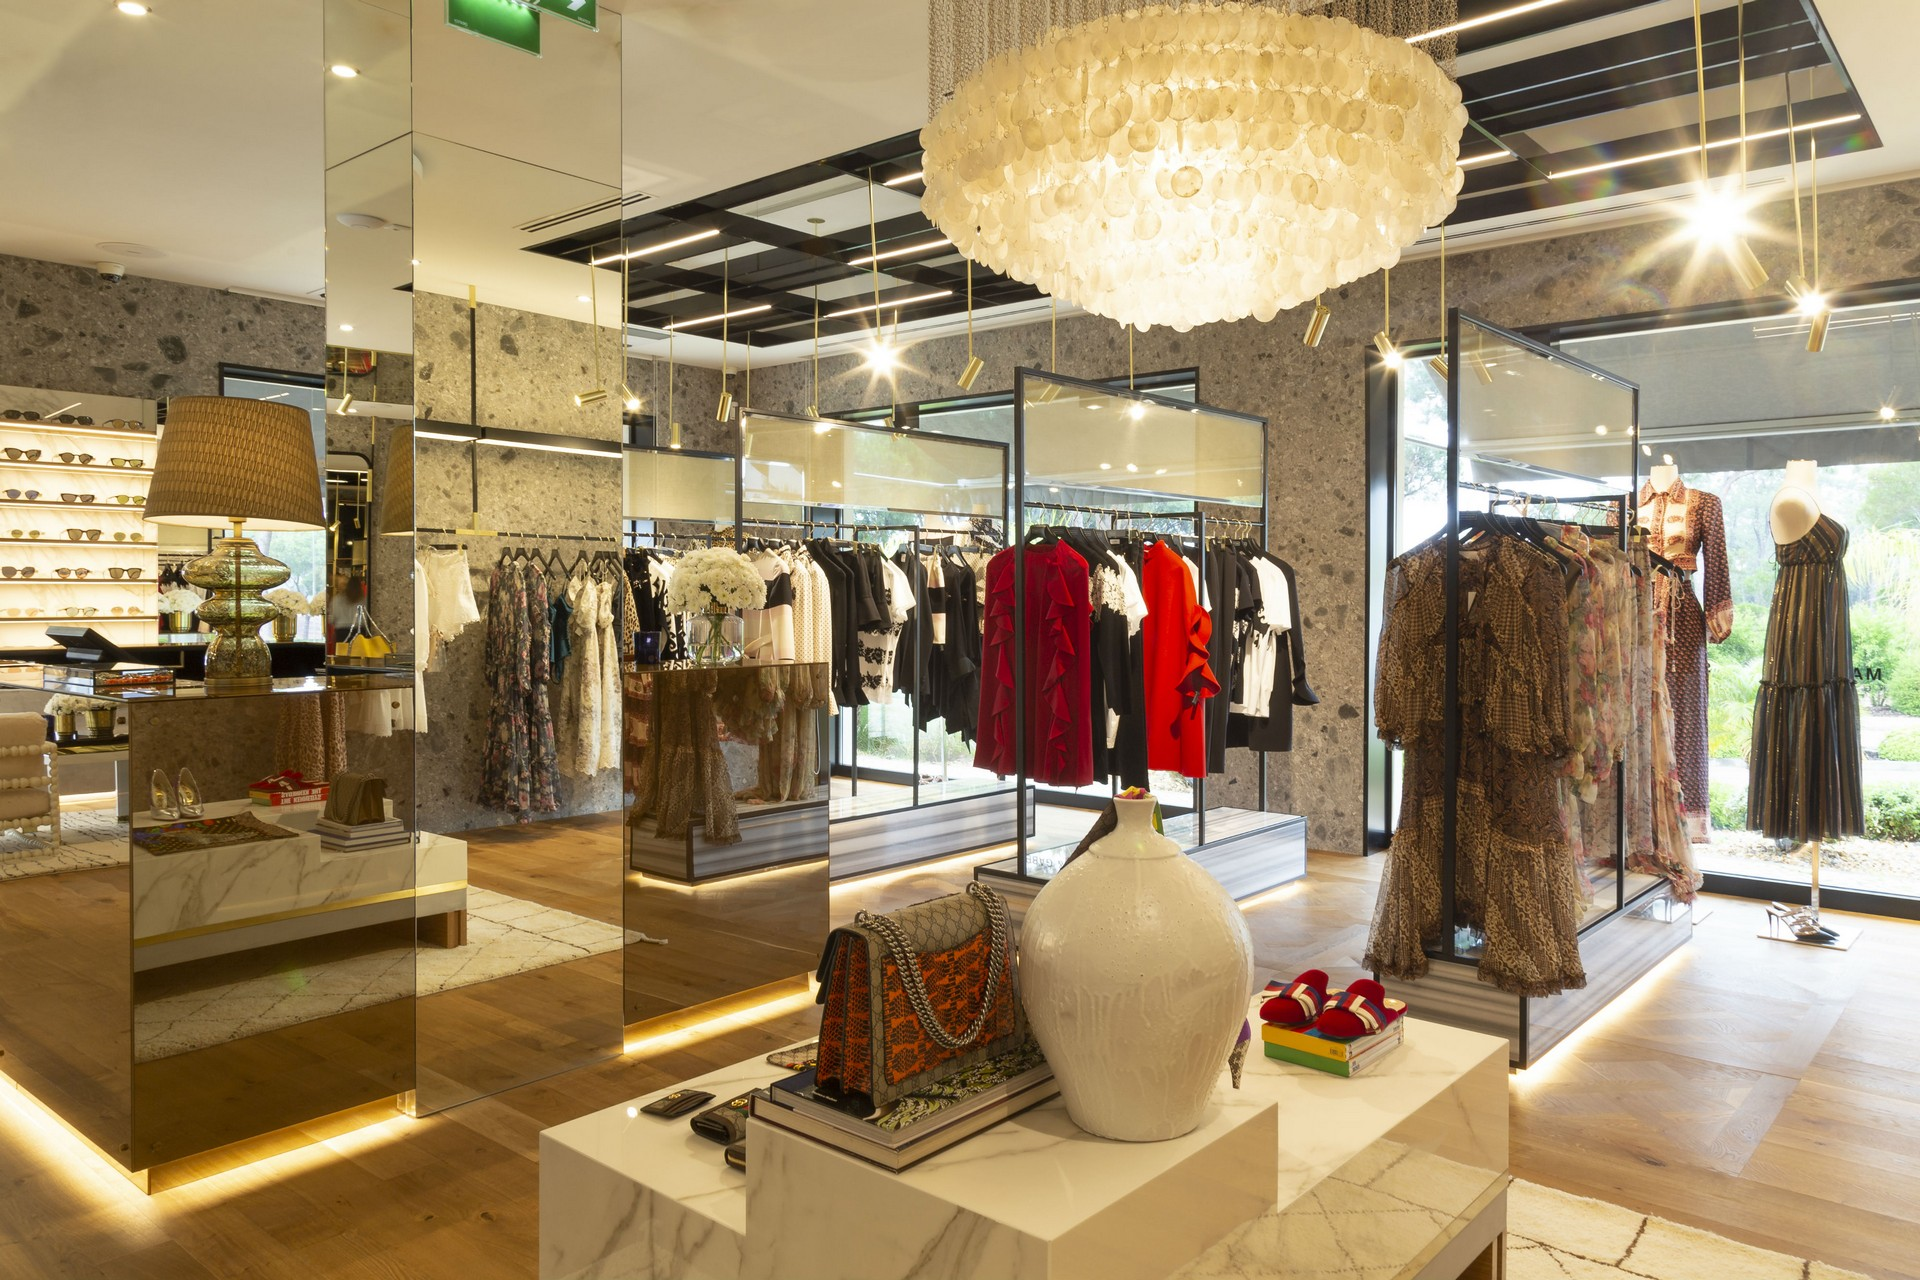 Luxury Portuguese Stores in the South of Portugal: Fashion Clinic luxury portuguese stores Luxury Portuguese Stores in the South of Portugal Luxury Portuguese Stores in the South of Portugal 1